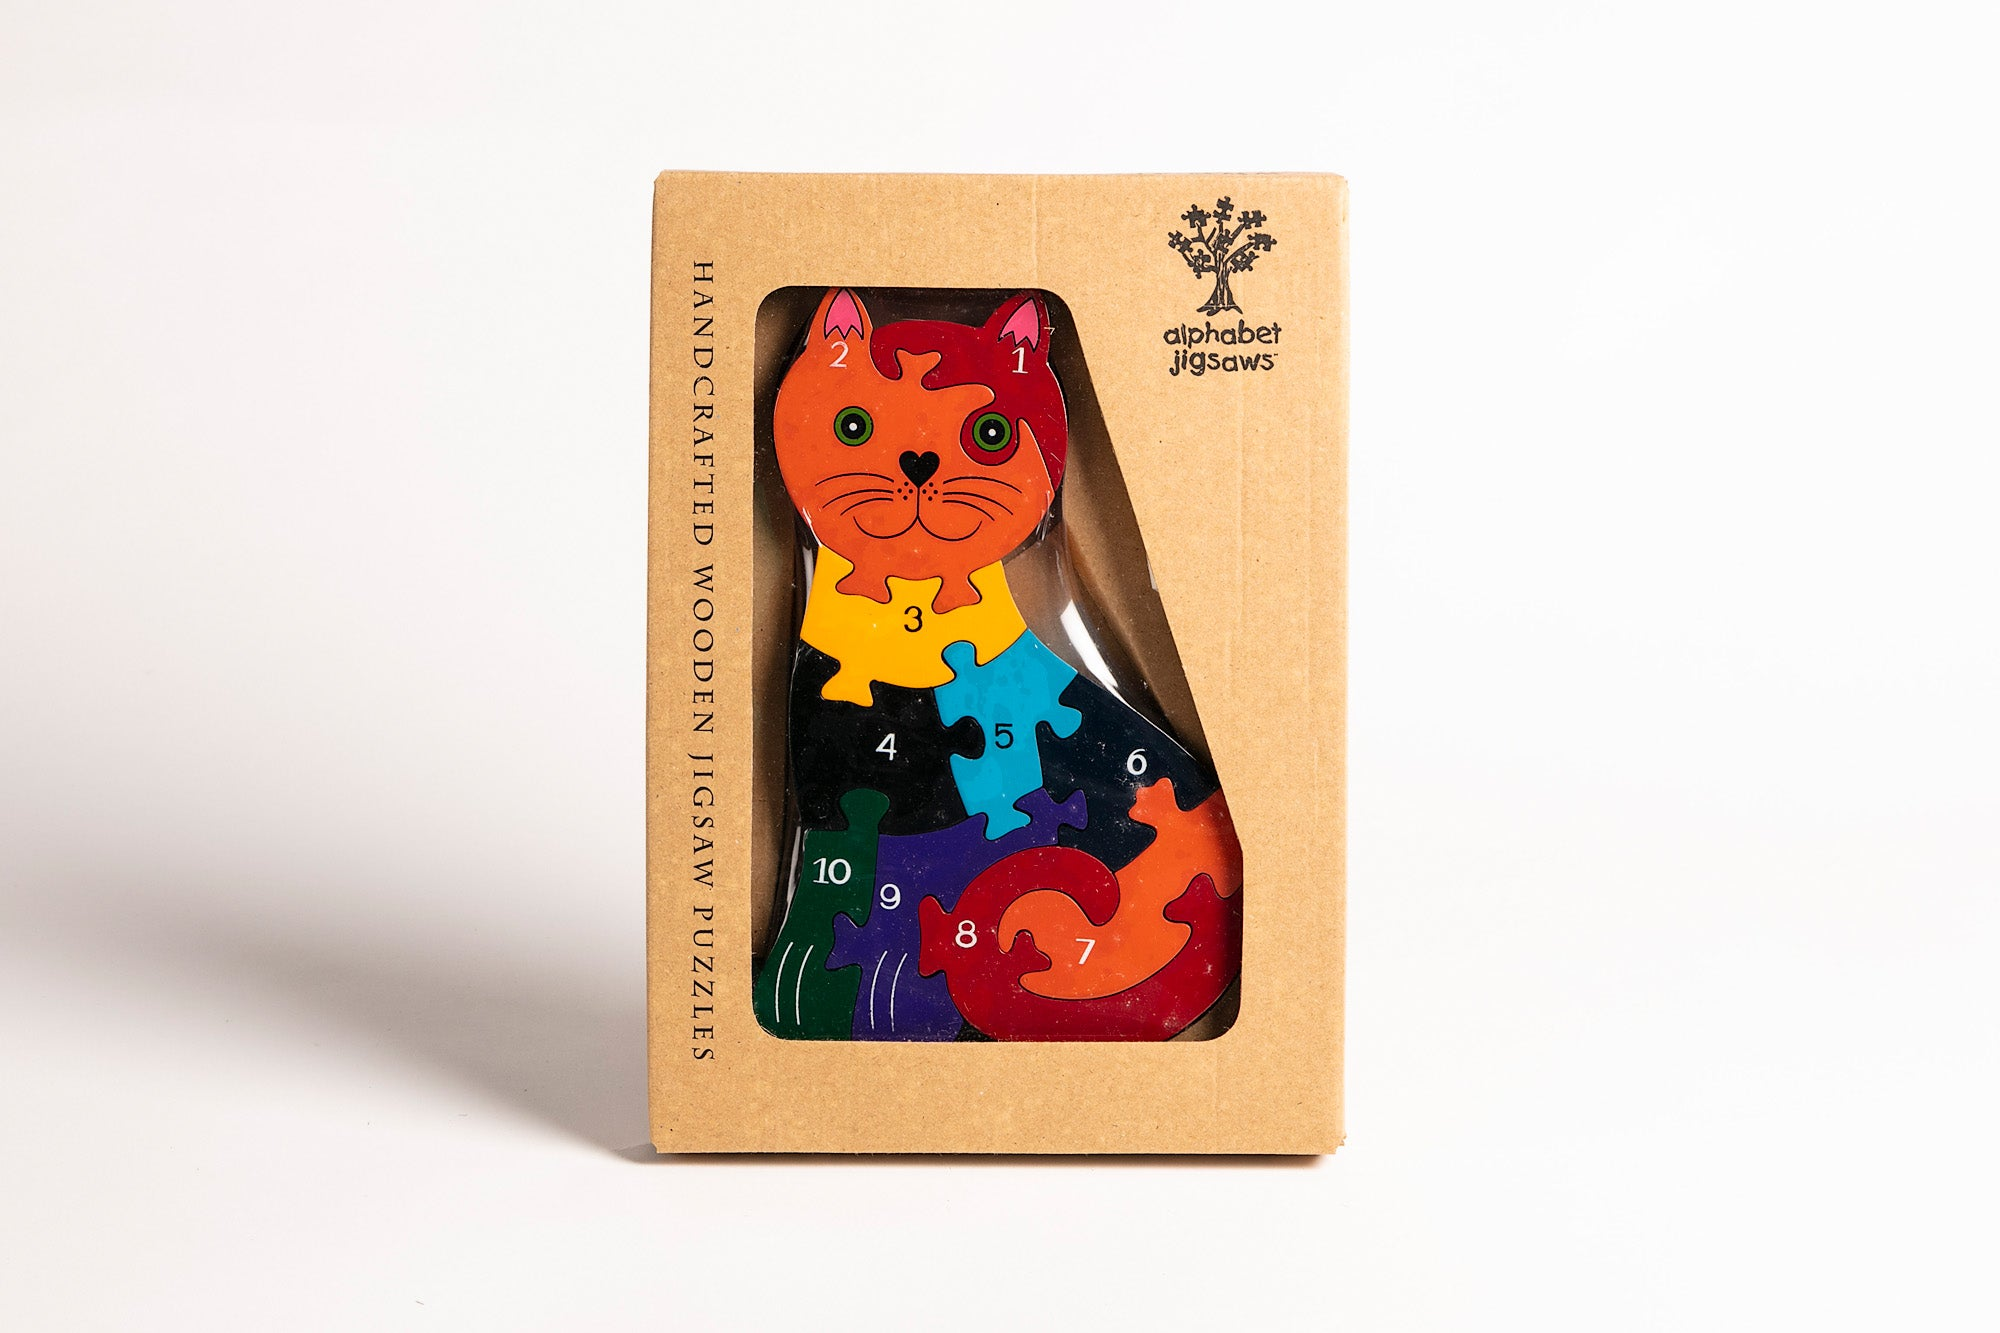 Wooden Jigsaw Puzzle, Numbers Cat, Alphabet Jigsaws